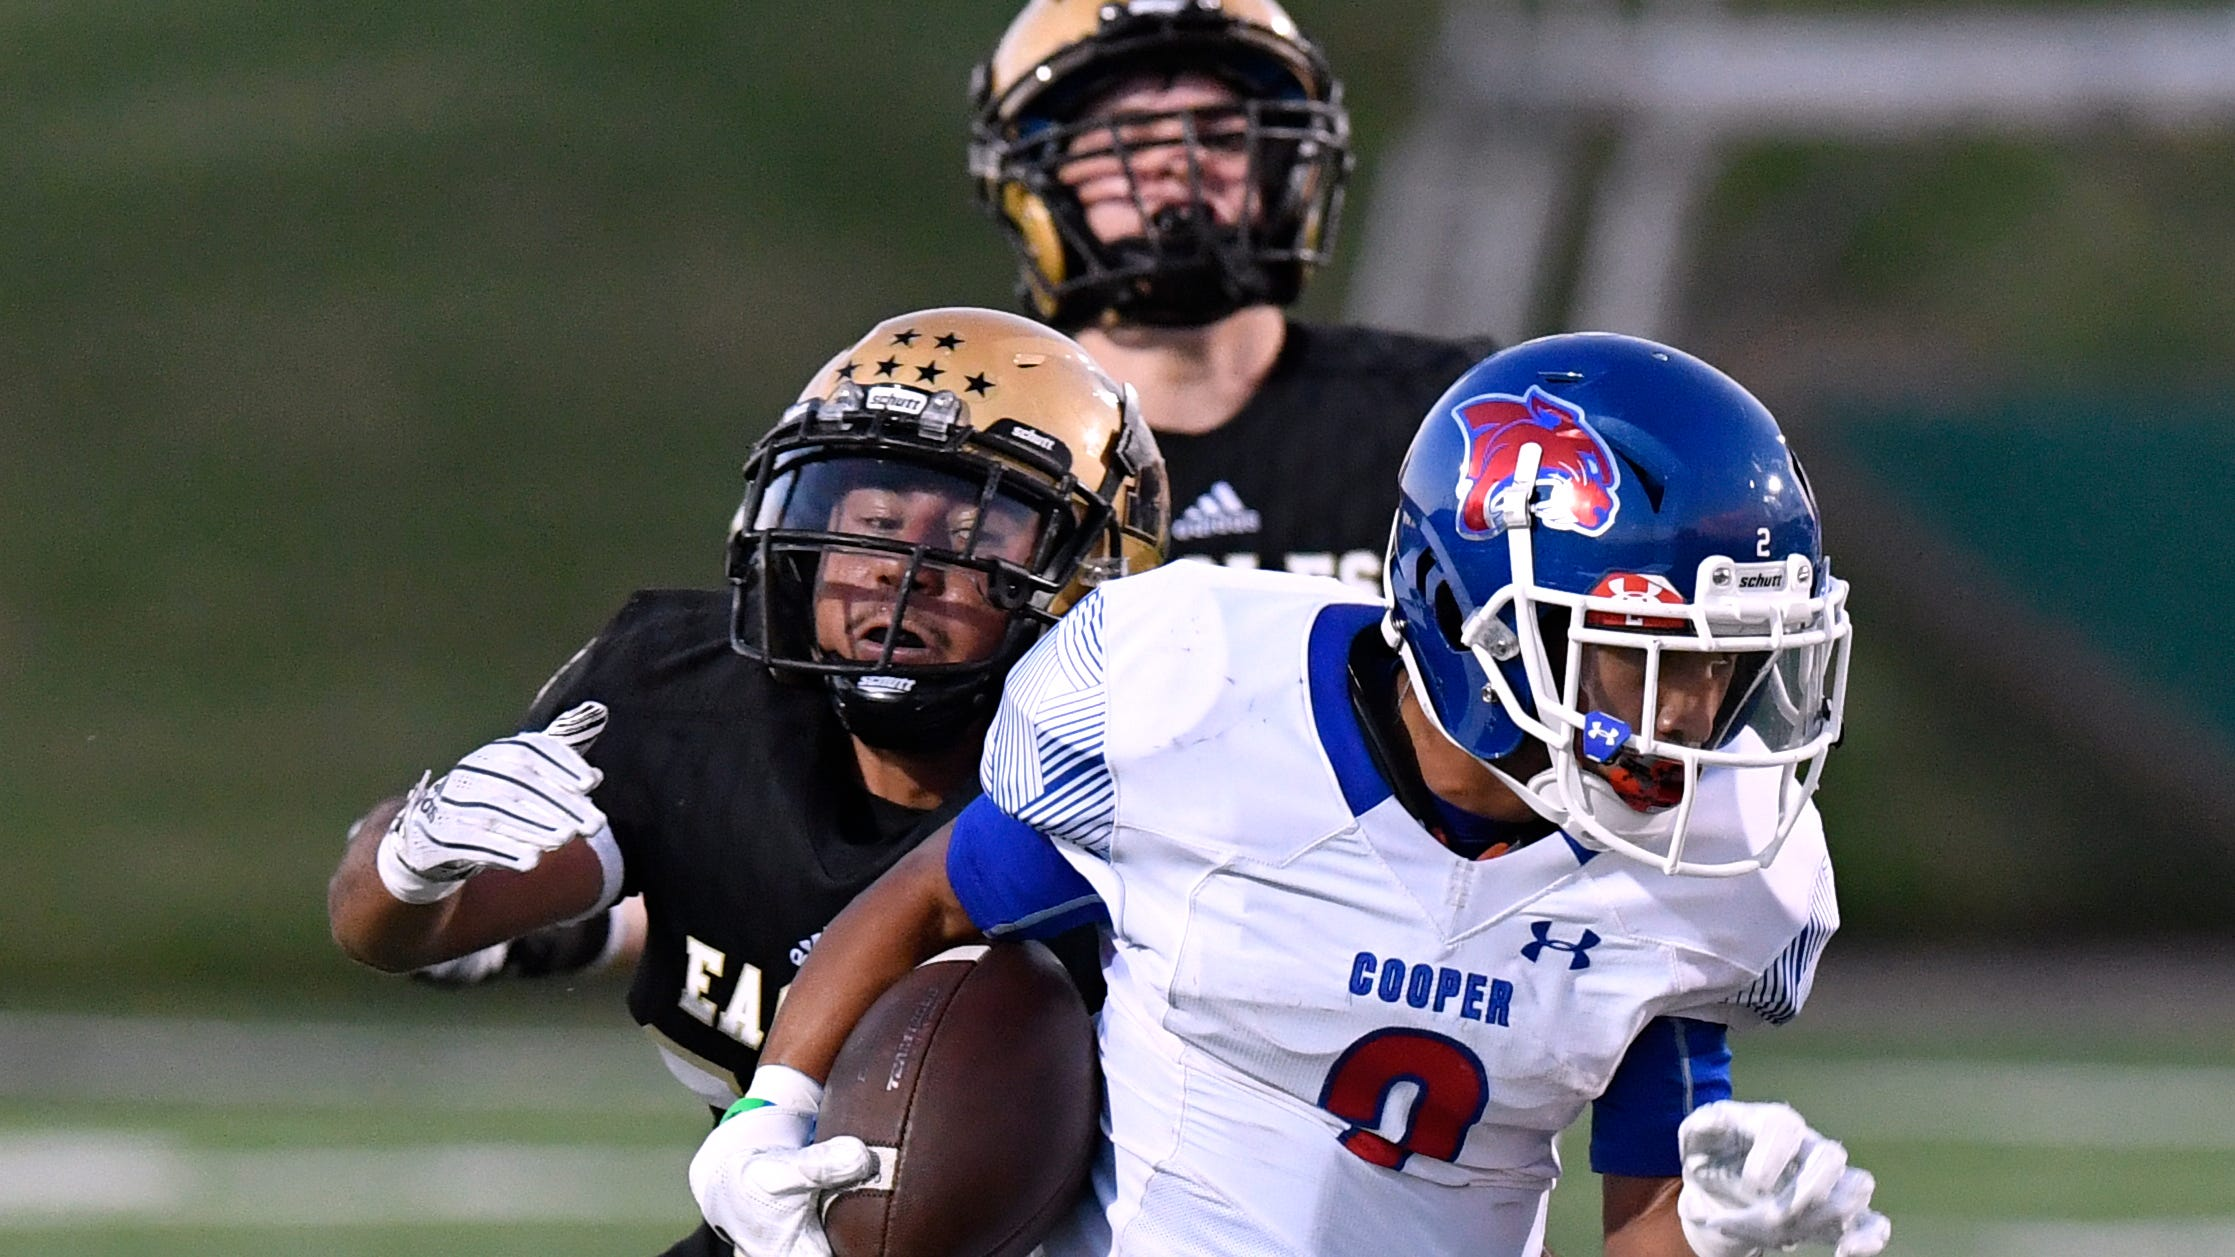 Abilene High linebacker Juan Torres tries to catch Cooper wide receiver Daelin Campos but is unable during Friday's Crosstown Showdown Sept. 14, 2018. Abilene won, 20-13.